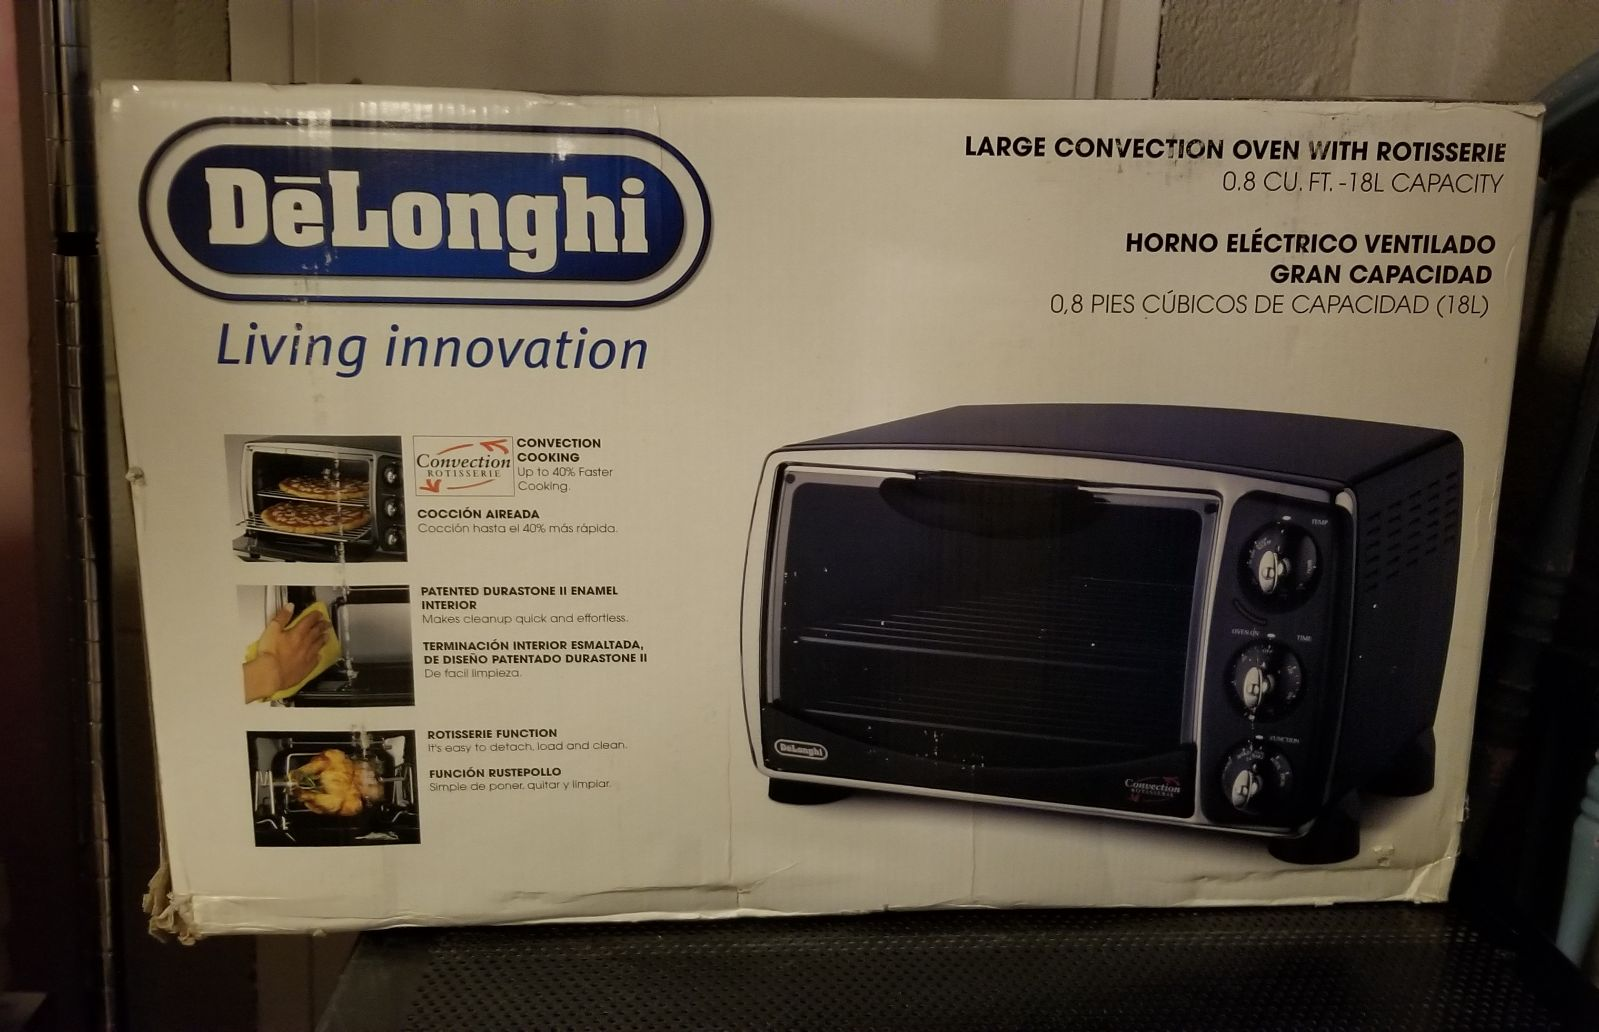 DeLonghi Large Convection Oven with Roti